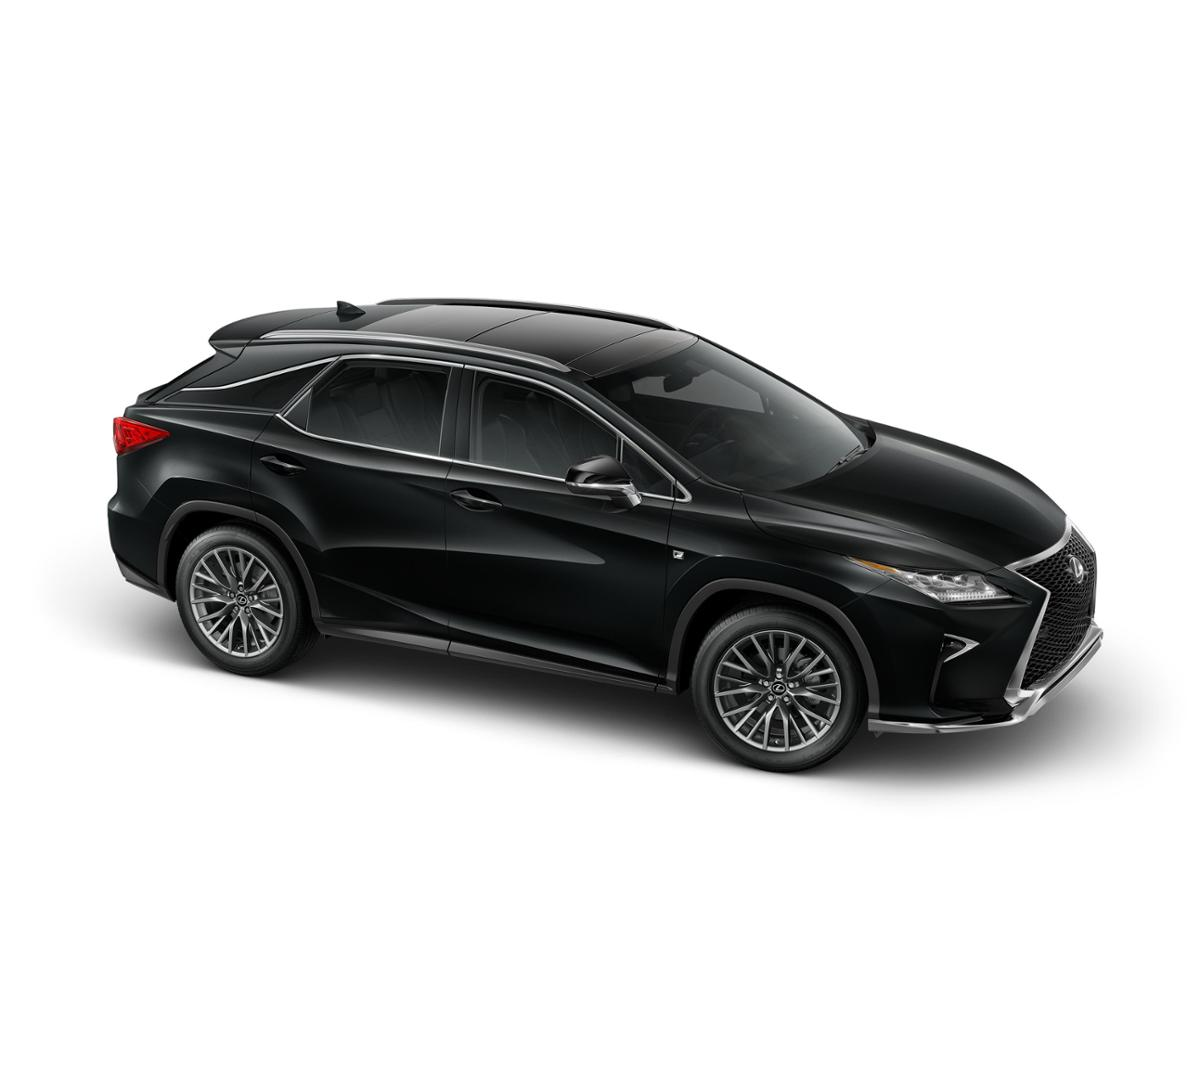 Lexus Rx 350 Lease: BUTLER LEXUS OF SOUTH